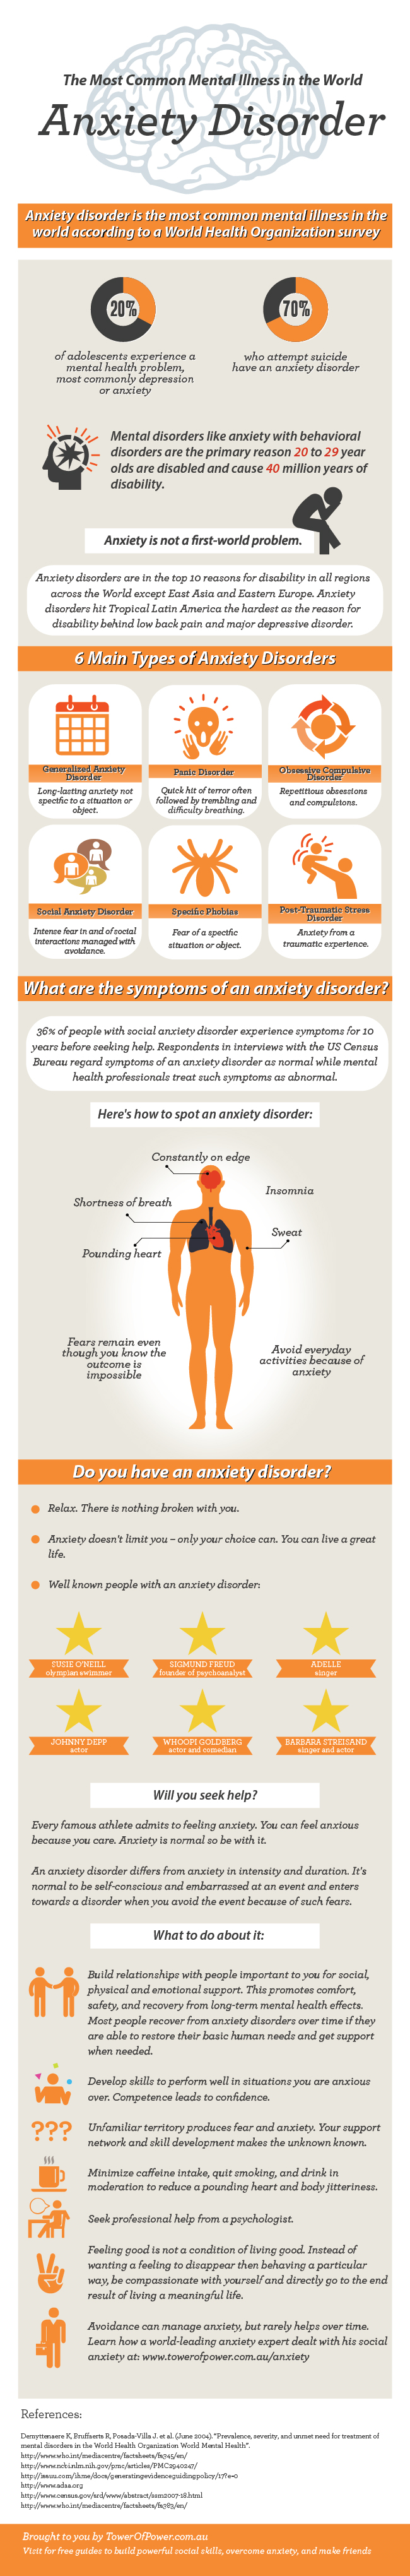 6 Types Of Anxiety Disorder Infographic